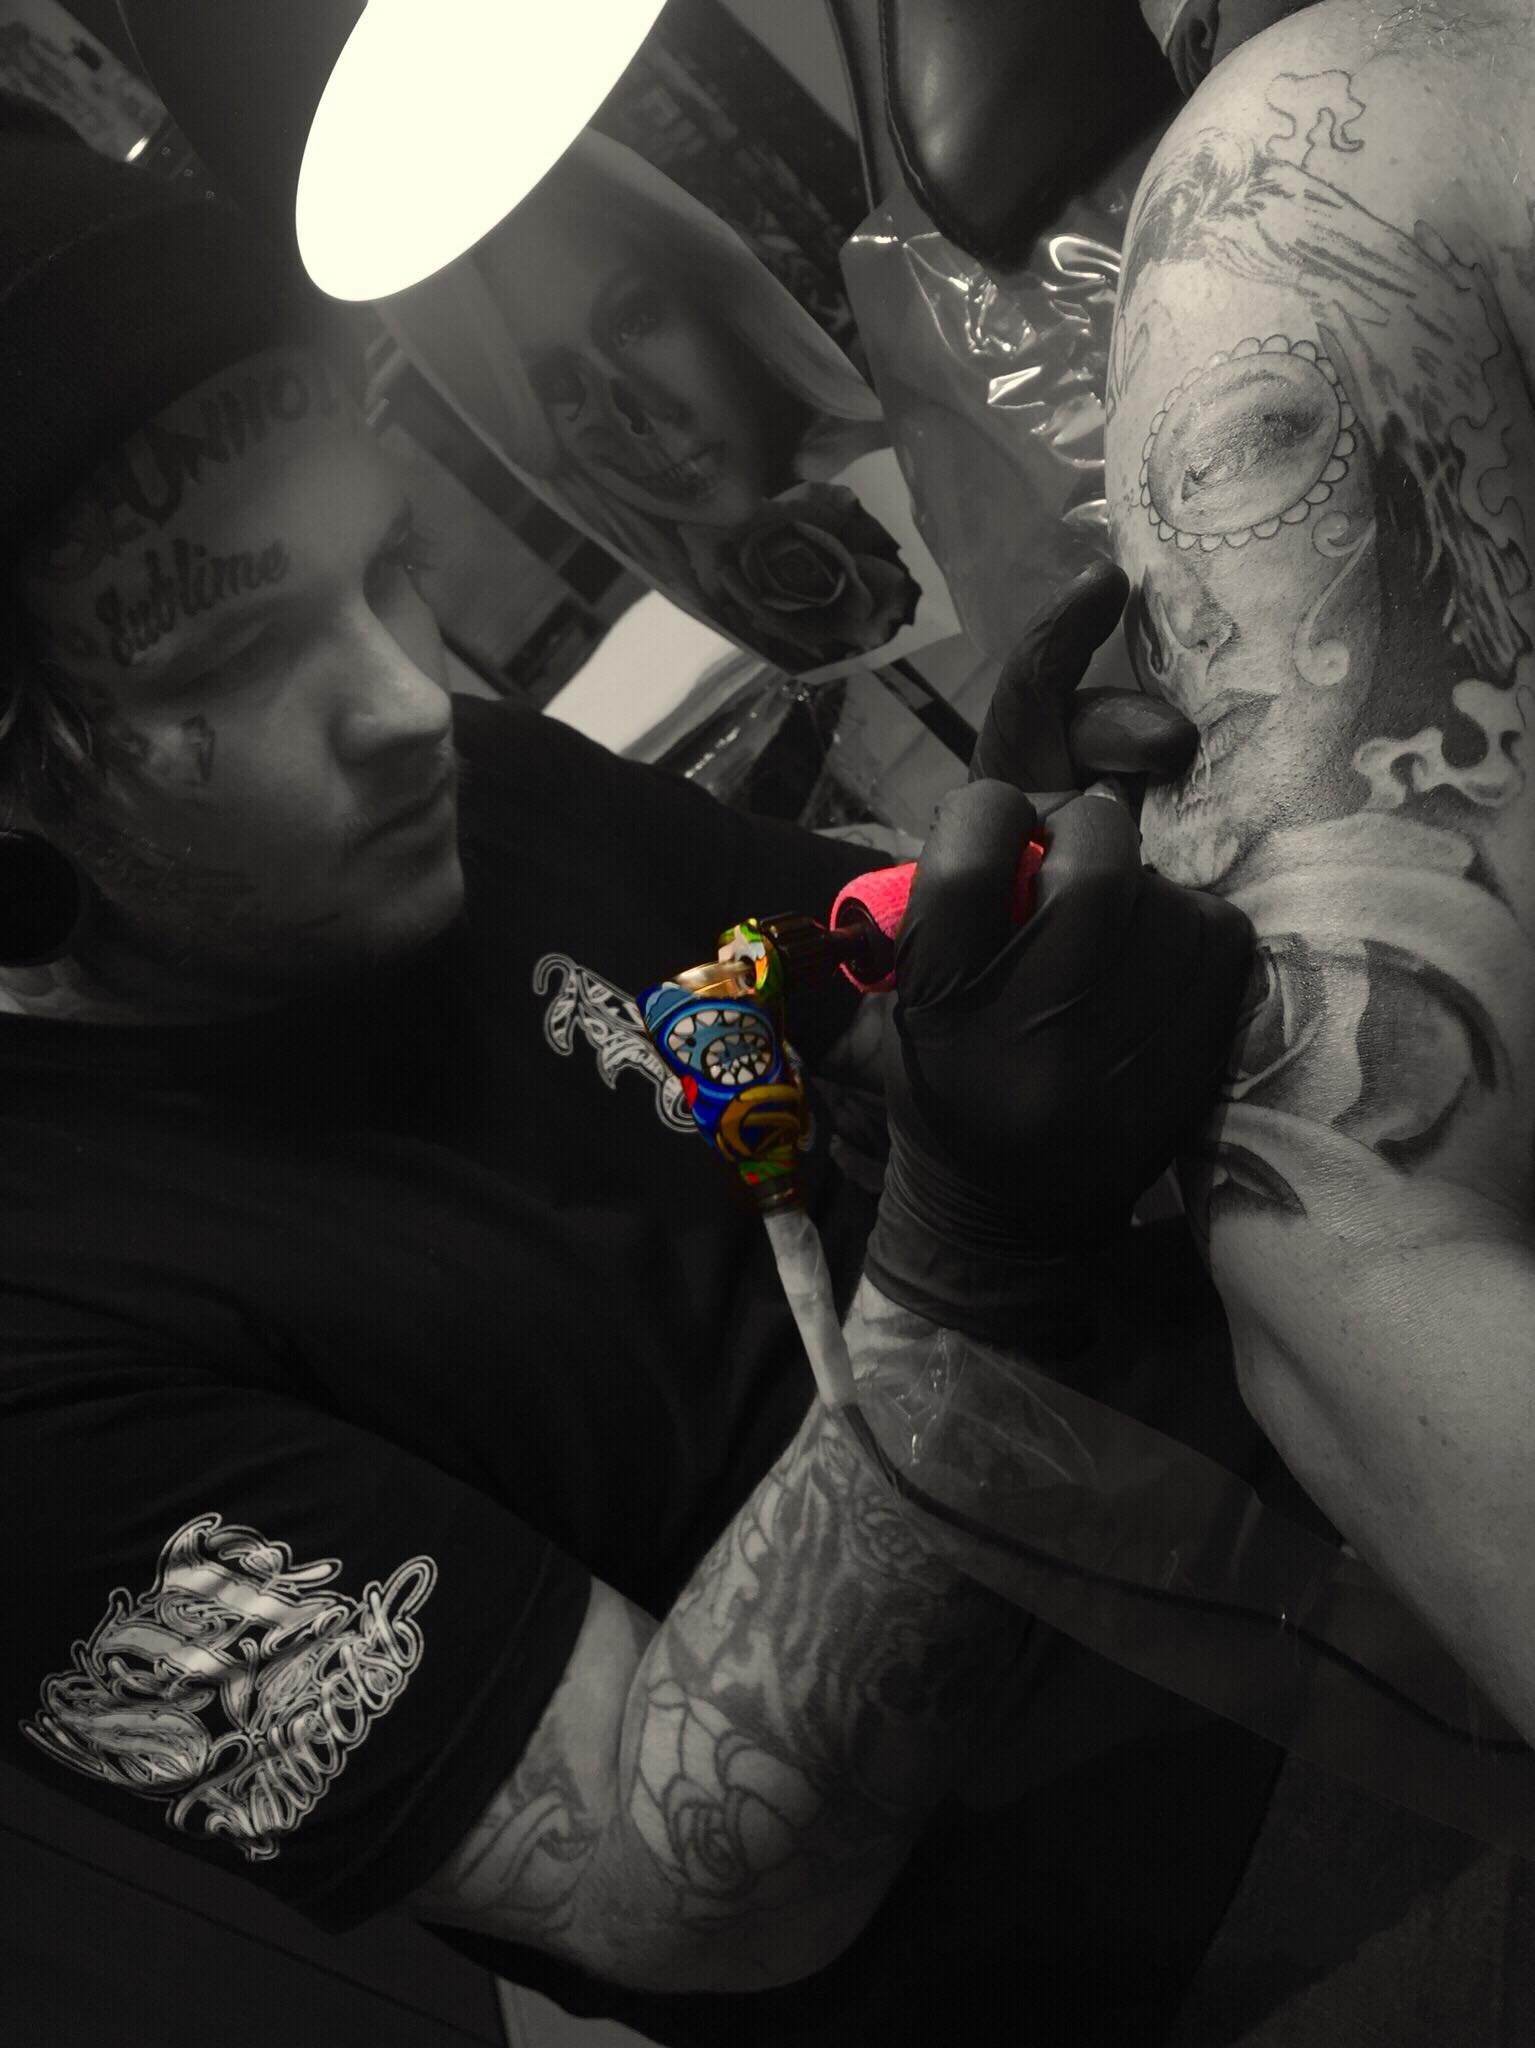 Scott Pickering - Scott is a Australia based artist who's preferred style is black and grey realism but he also enjoys doing color tattoos and Mandalas. Click on his photo to see some of his work!